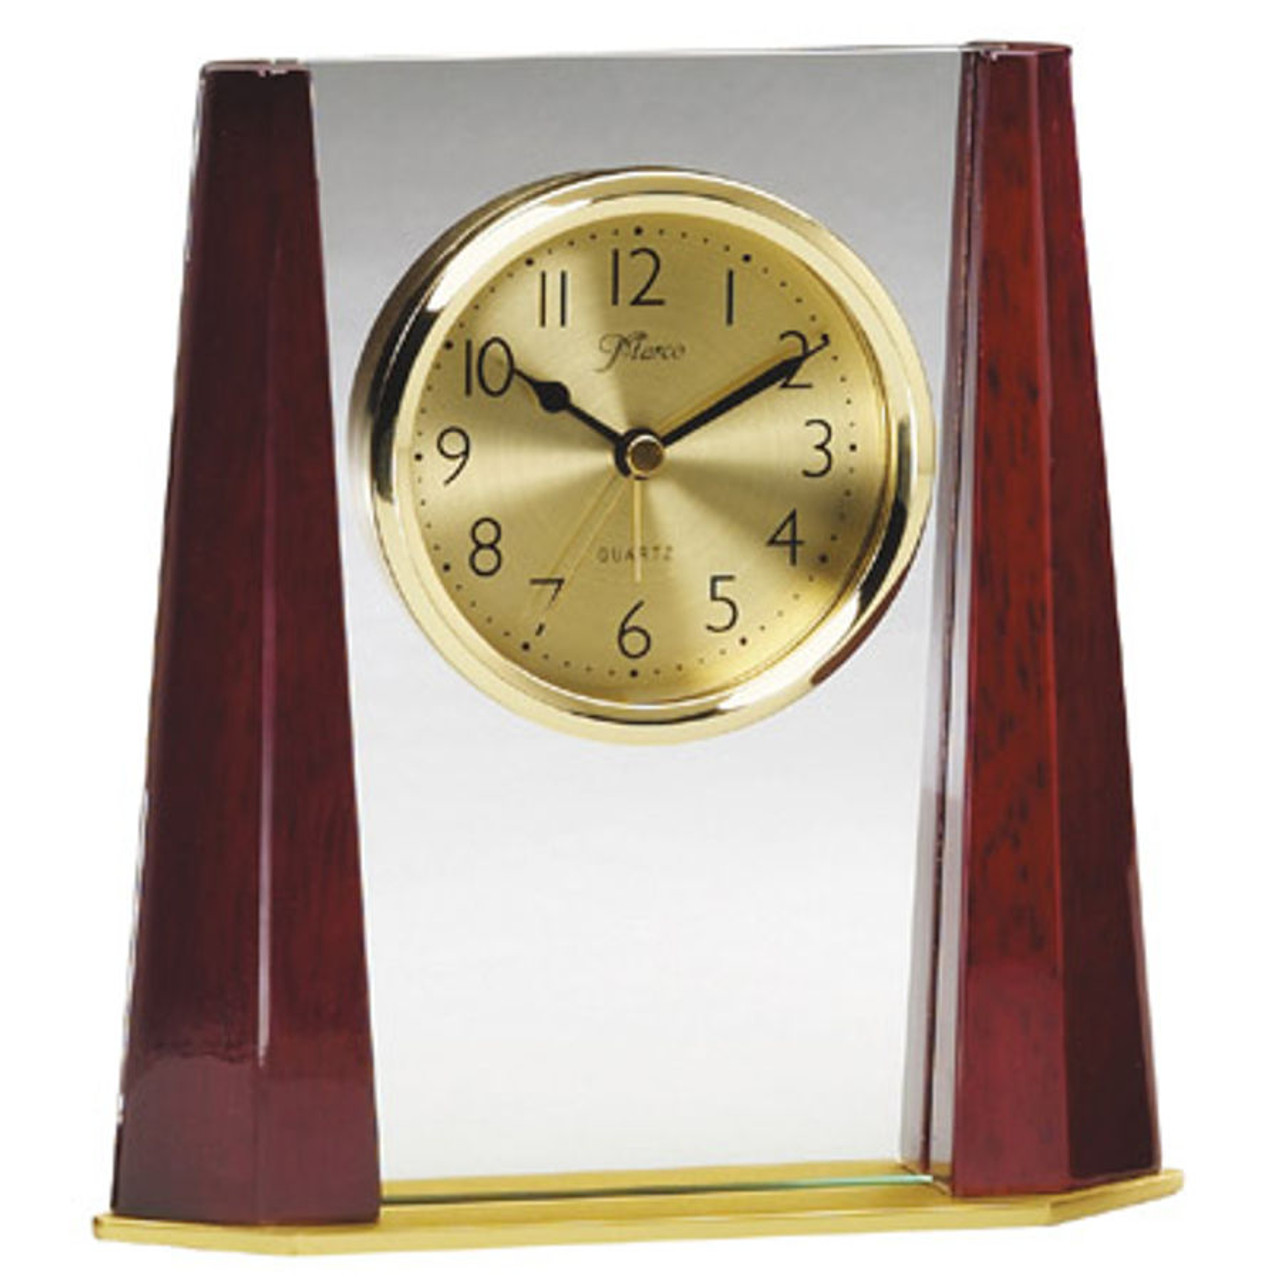 2 Tone Column Award Clock